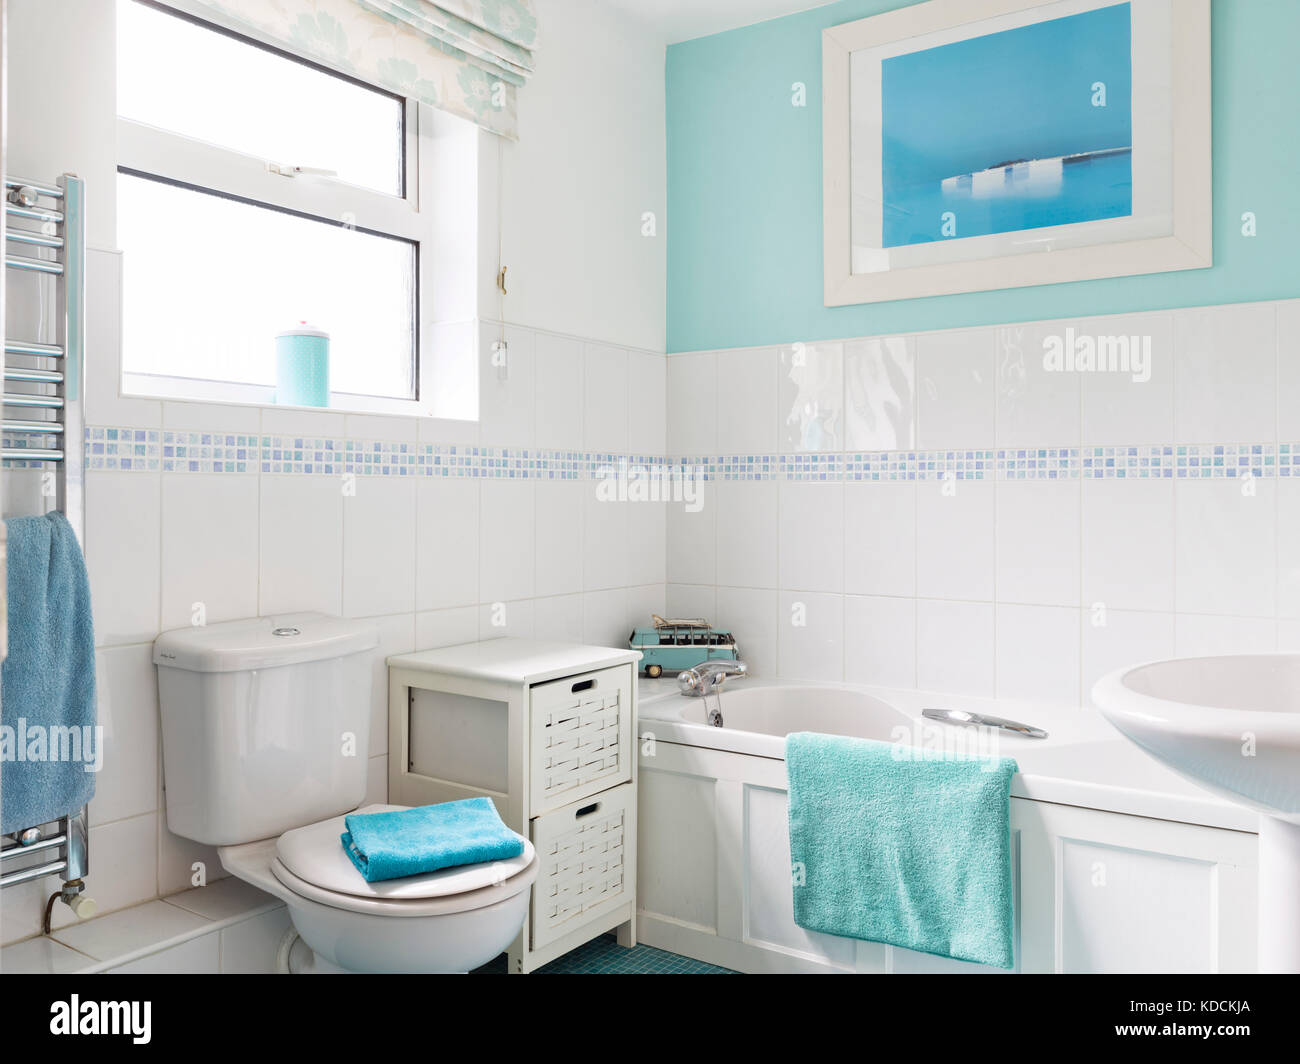 A typical small modern family bathroom in an average UK home. - Stock Image